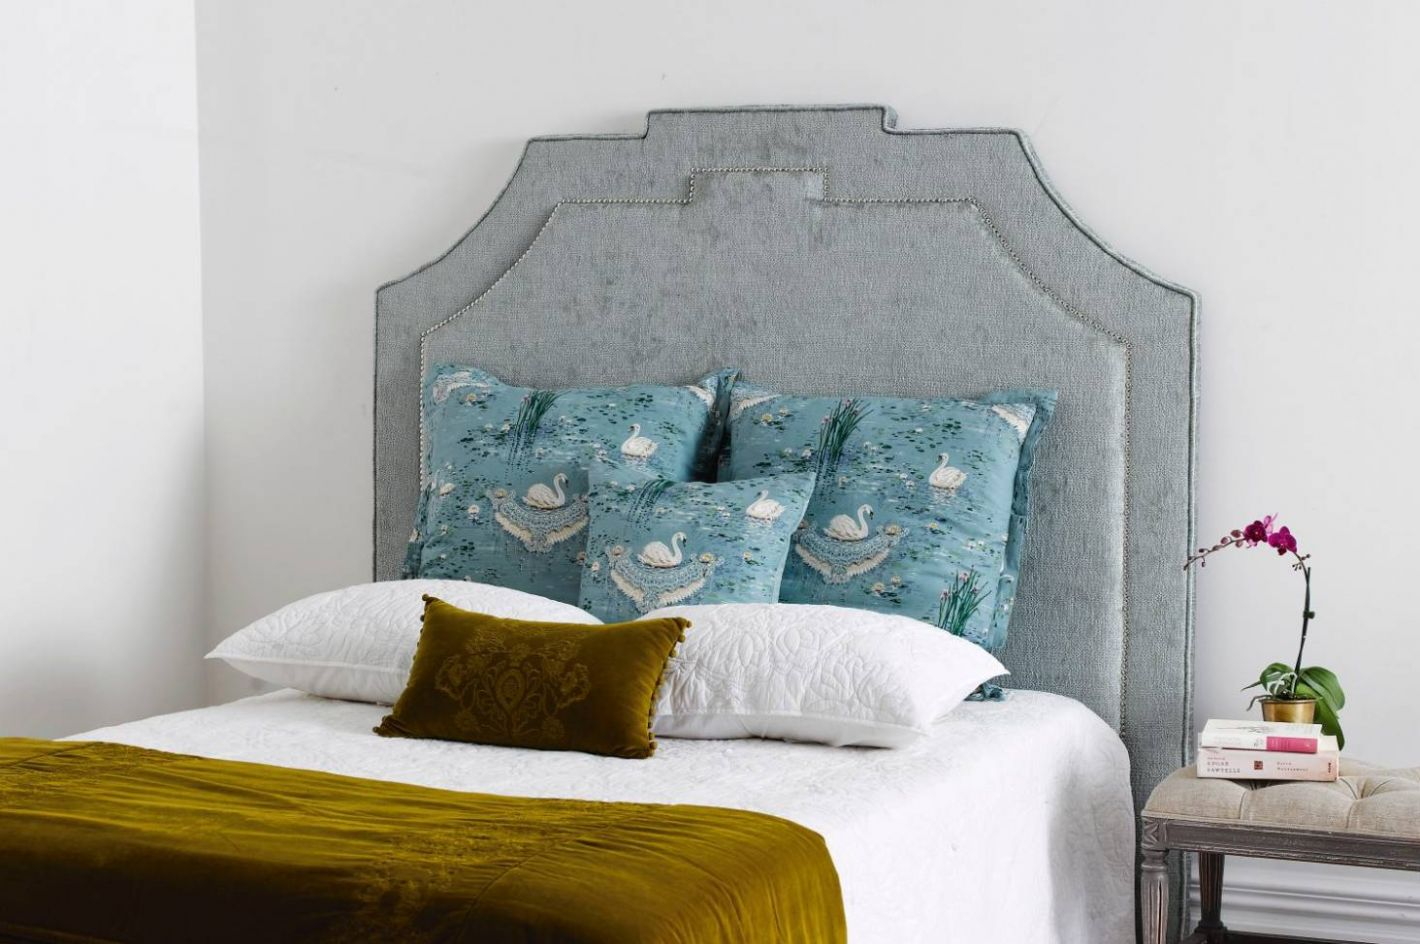 Bright ideas to dress up your bedroom   Stuff.co